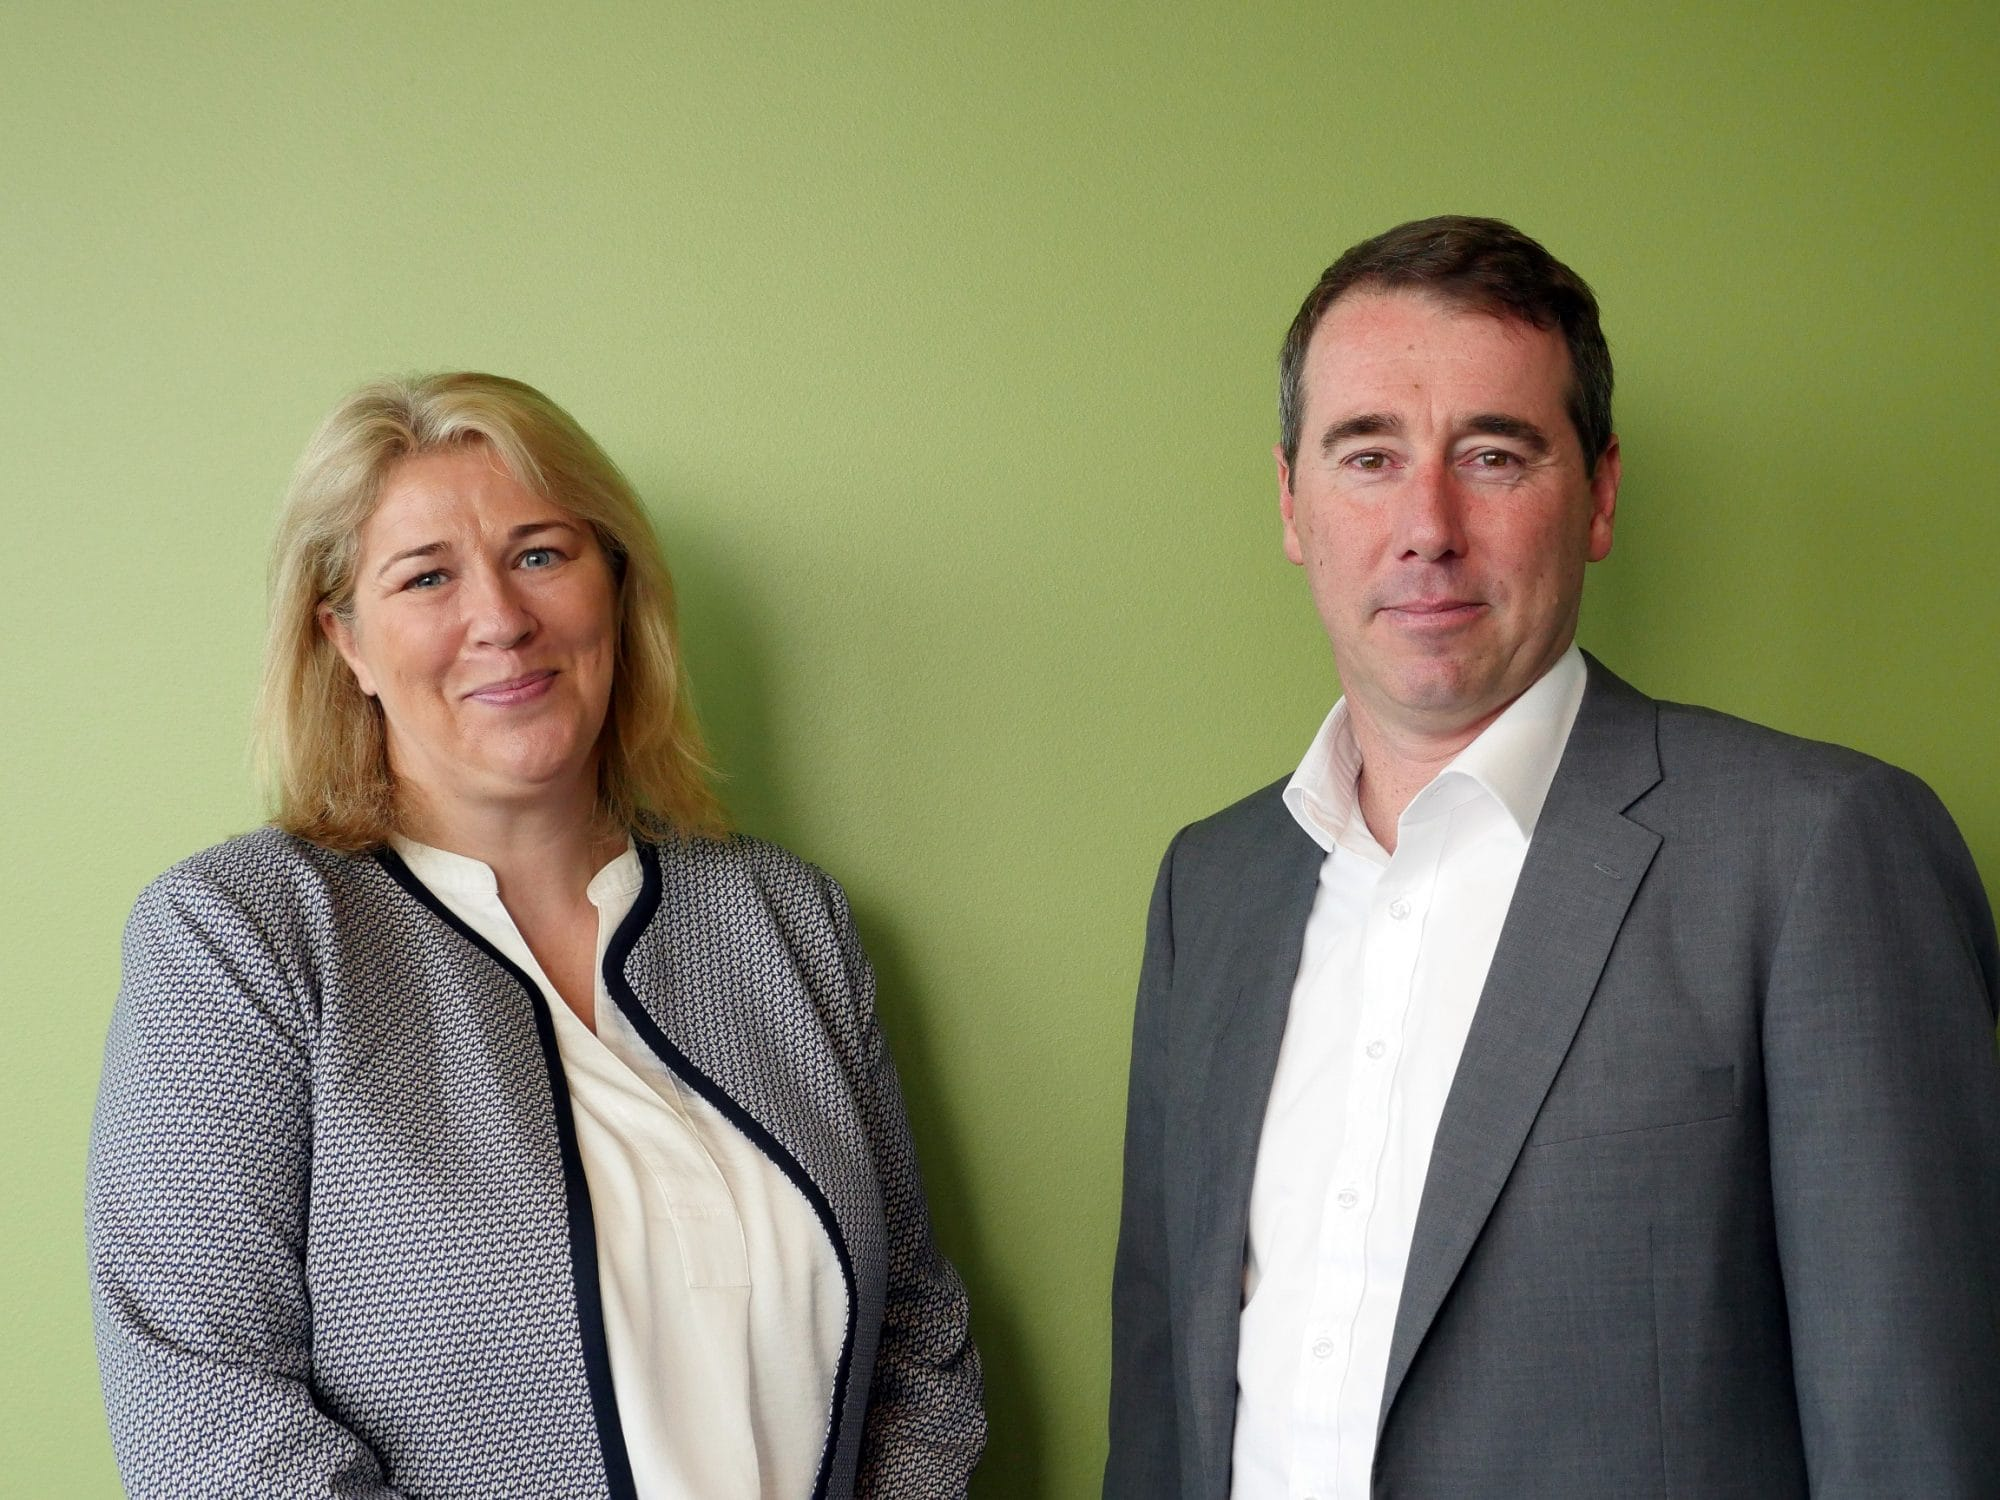 Joanne Smith Recordsure and Adrian Fisk KPMG